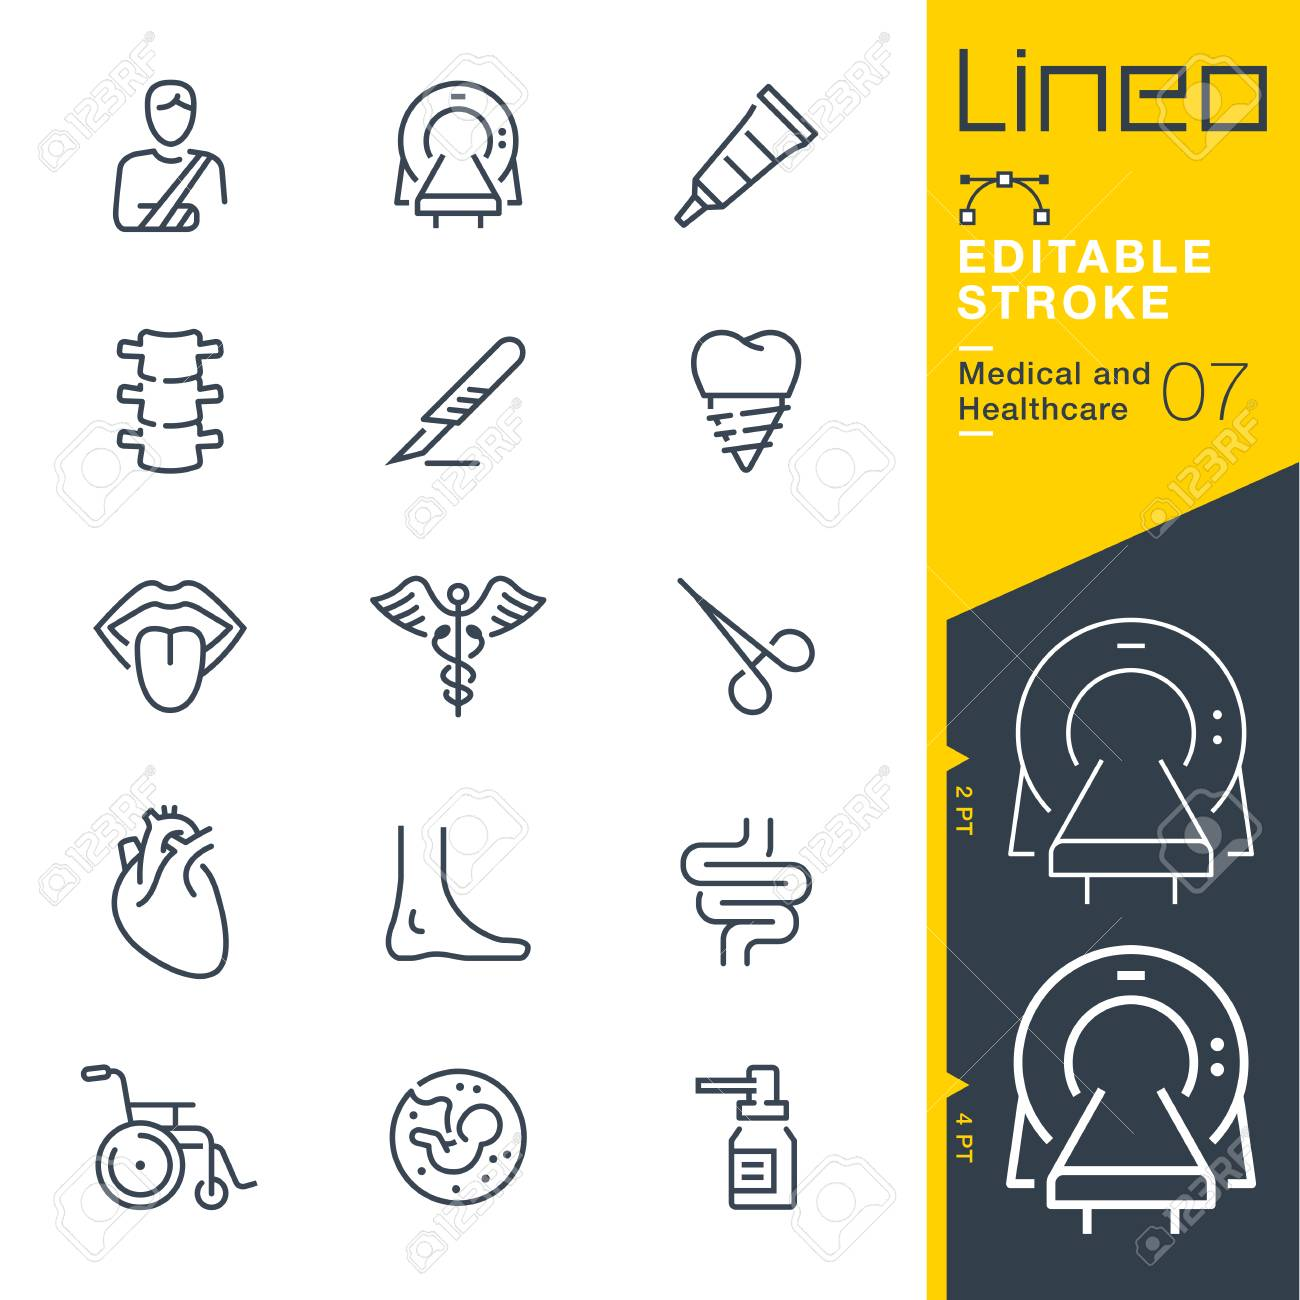 Line Editable Stroke - Medical and Healthcare Line Icons Vector illustration. - 99969161